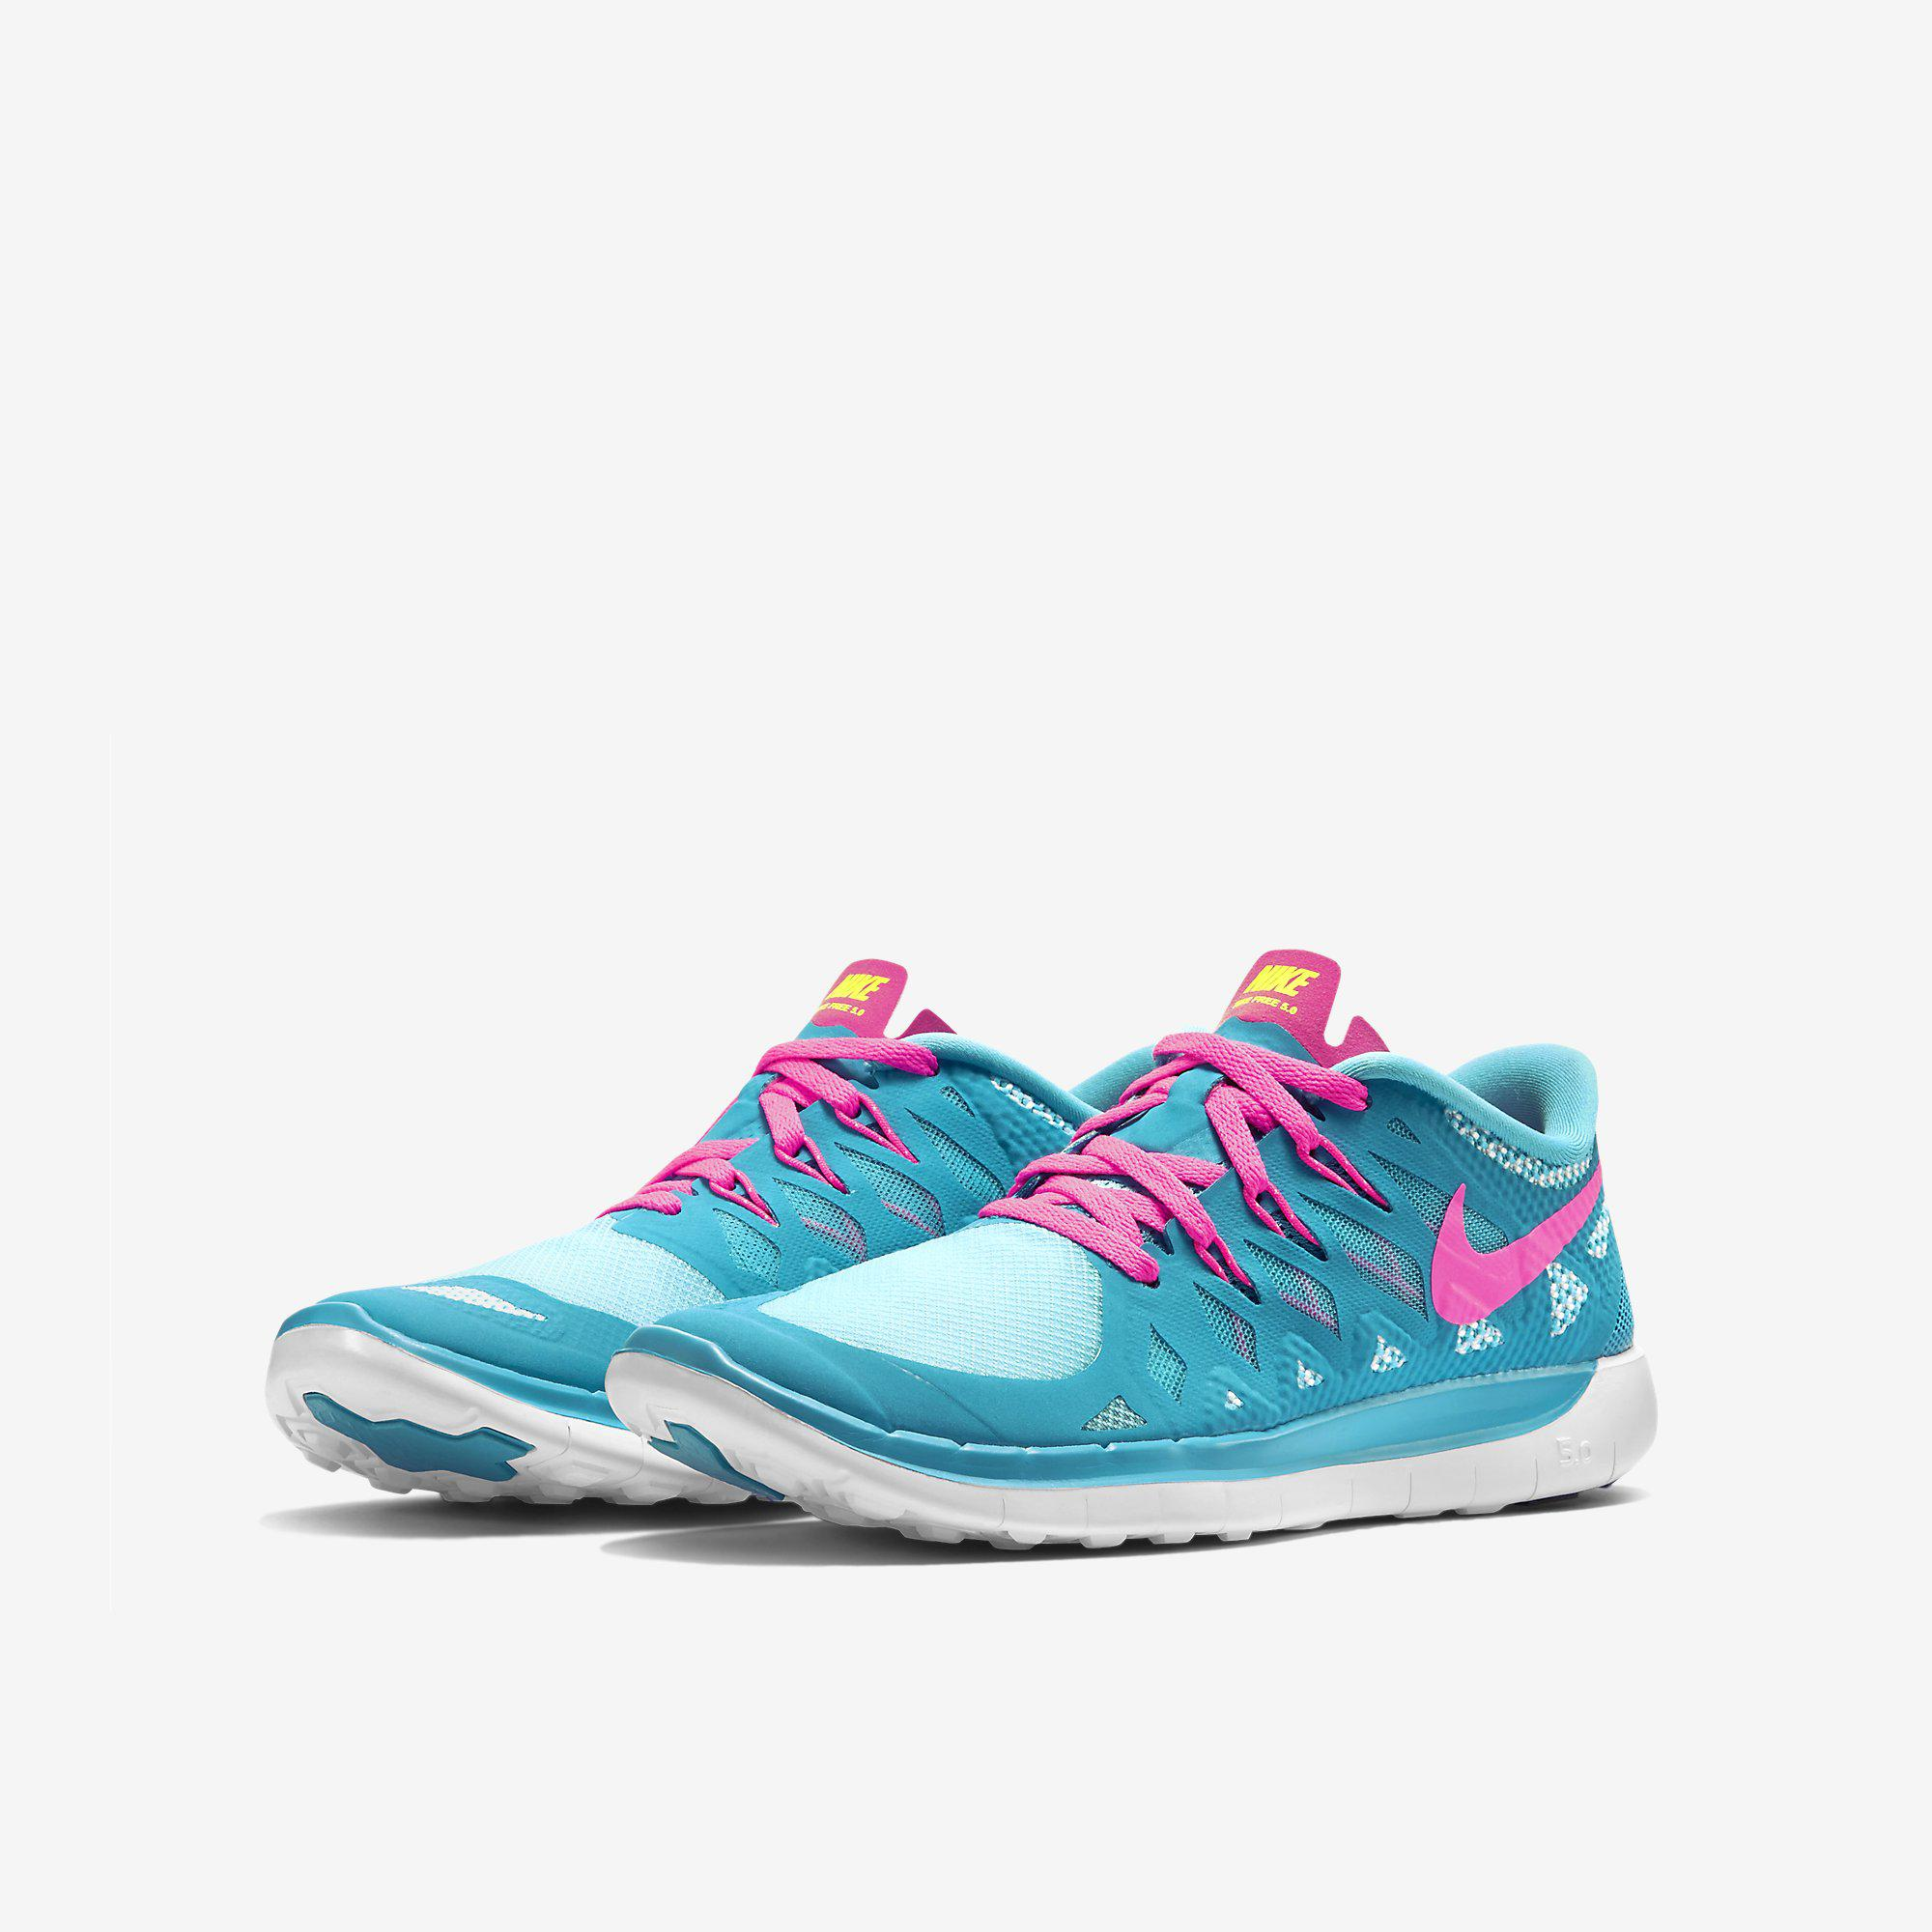 5da5277c8c749 Nike Girls Free 5.0 Running Shoes - Blue Lagoon Pink - Tennisnuts.com